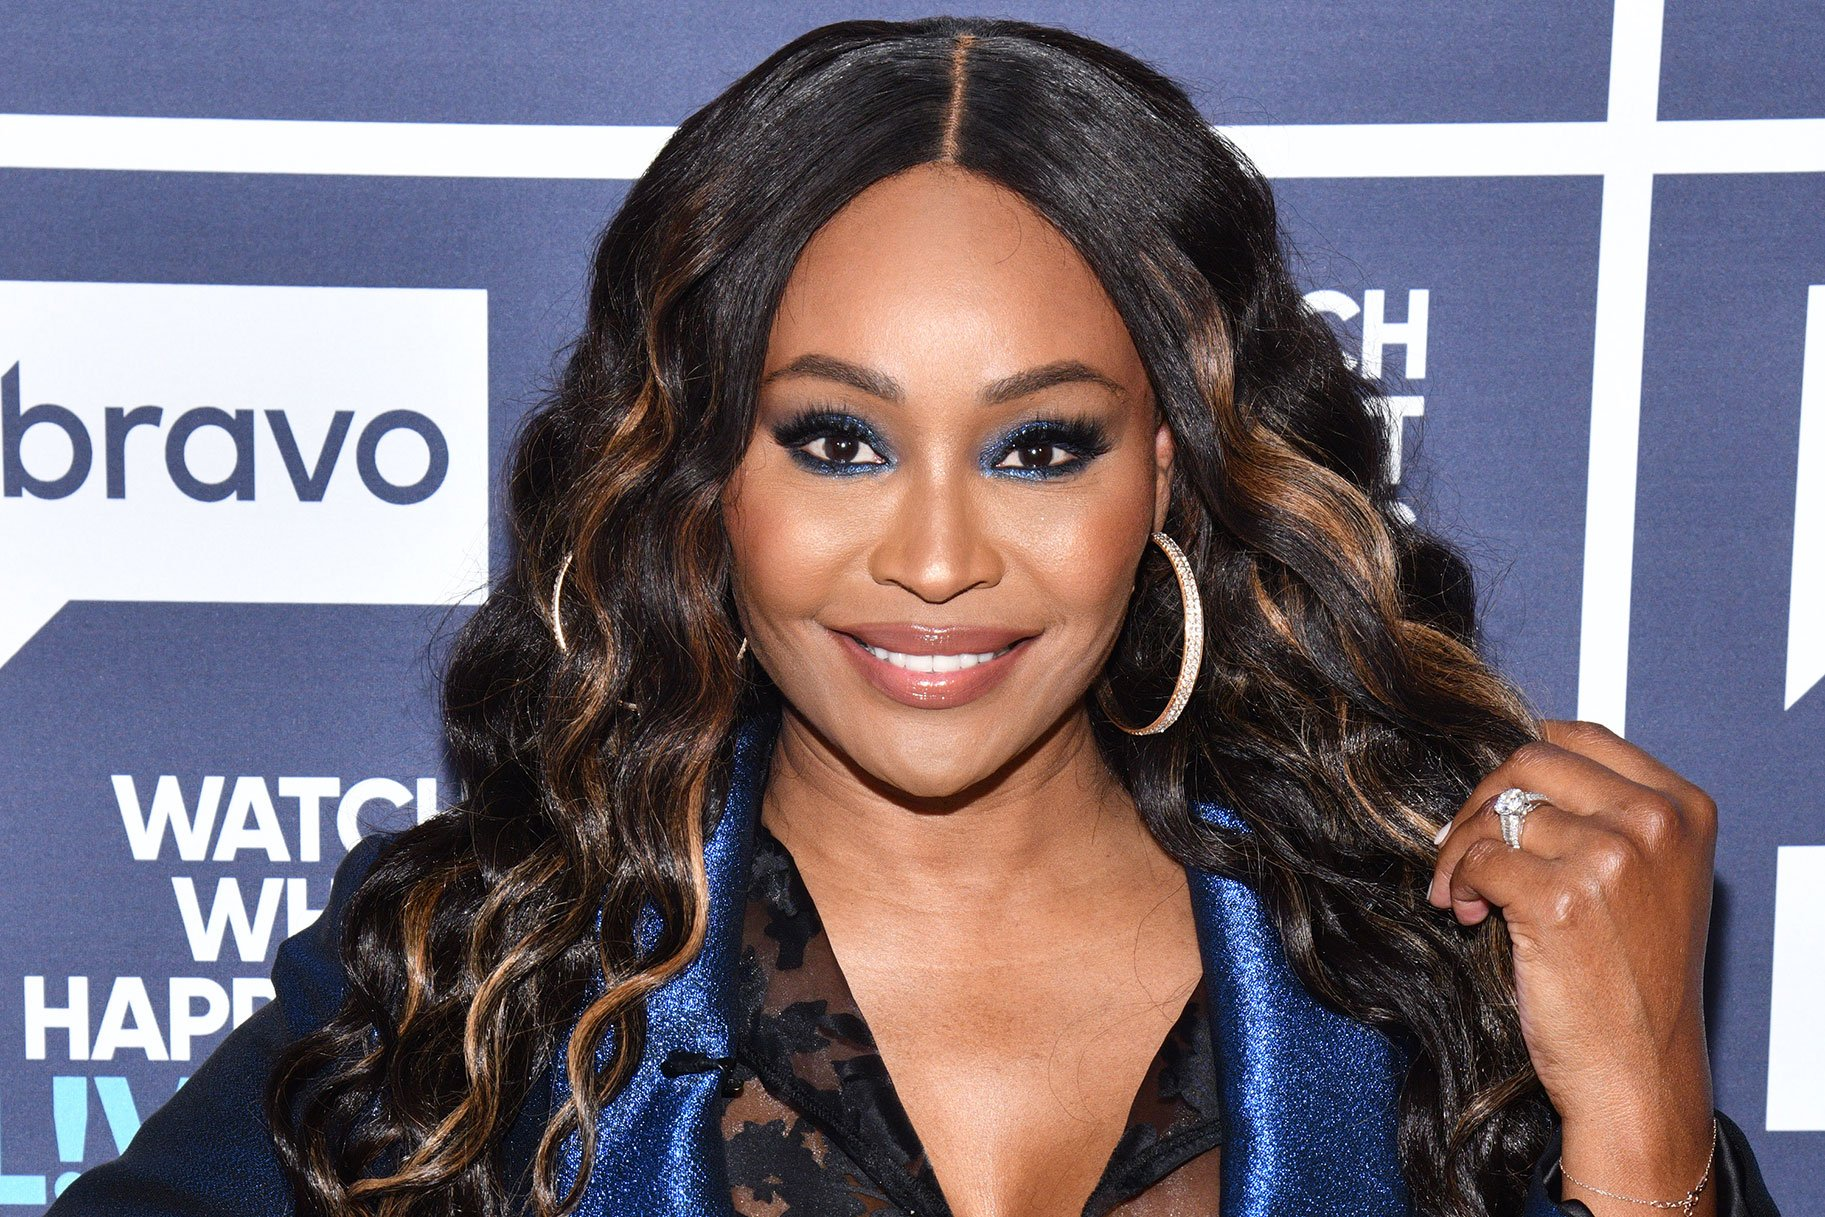 Cynthia Bailey Looks Drop-Dead Gorgeous In This Photo – Fans Are In Awe